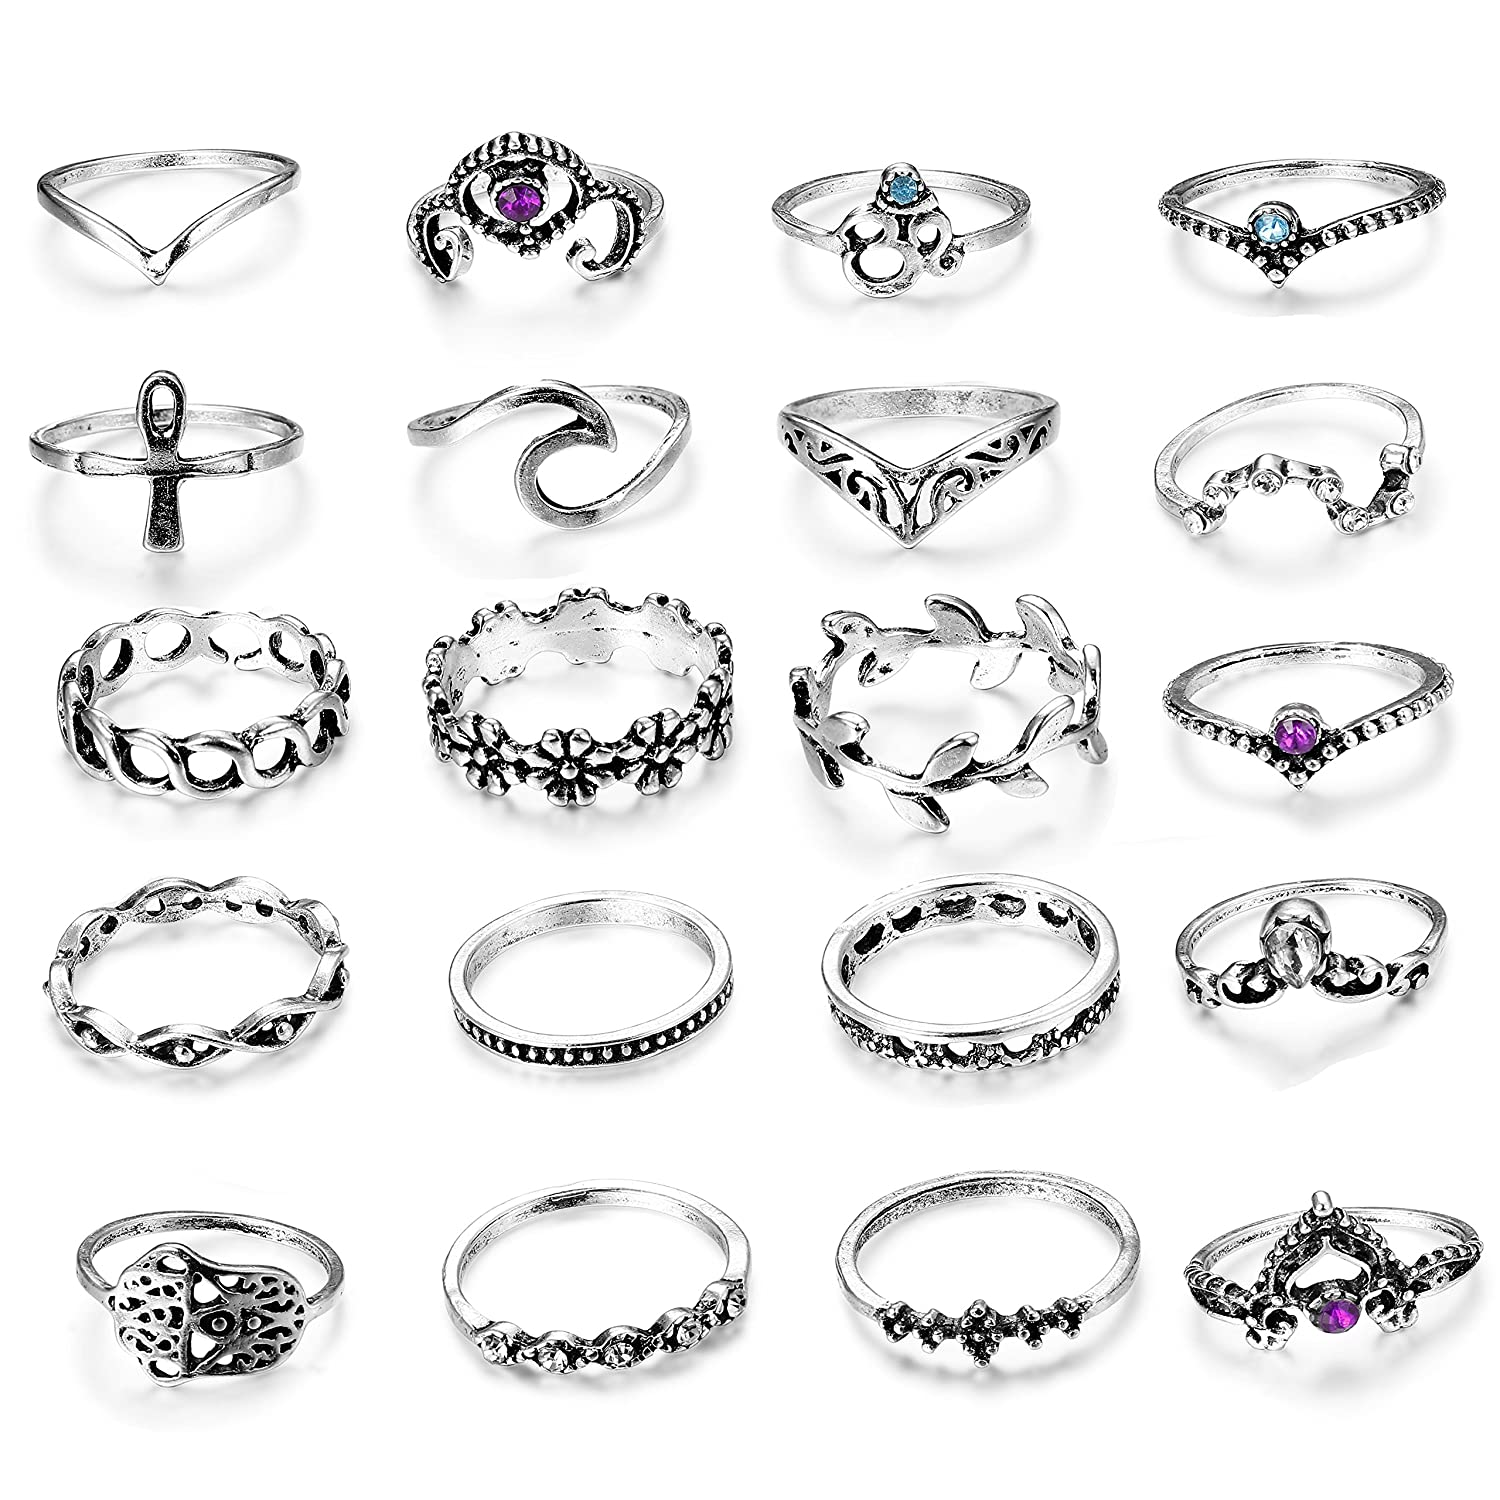 LOLIAS 20 Pcs Vintage Knuckle Ring Set for Women Girls Stackable Rings Set Hollow Carved Flowers L-JBZKR-20